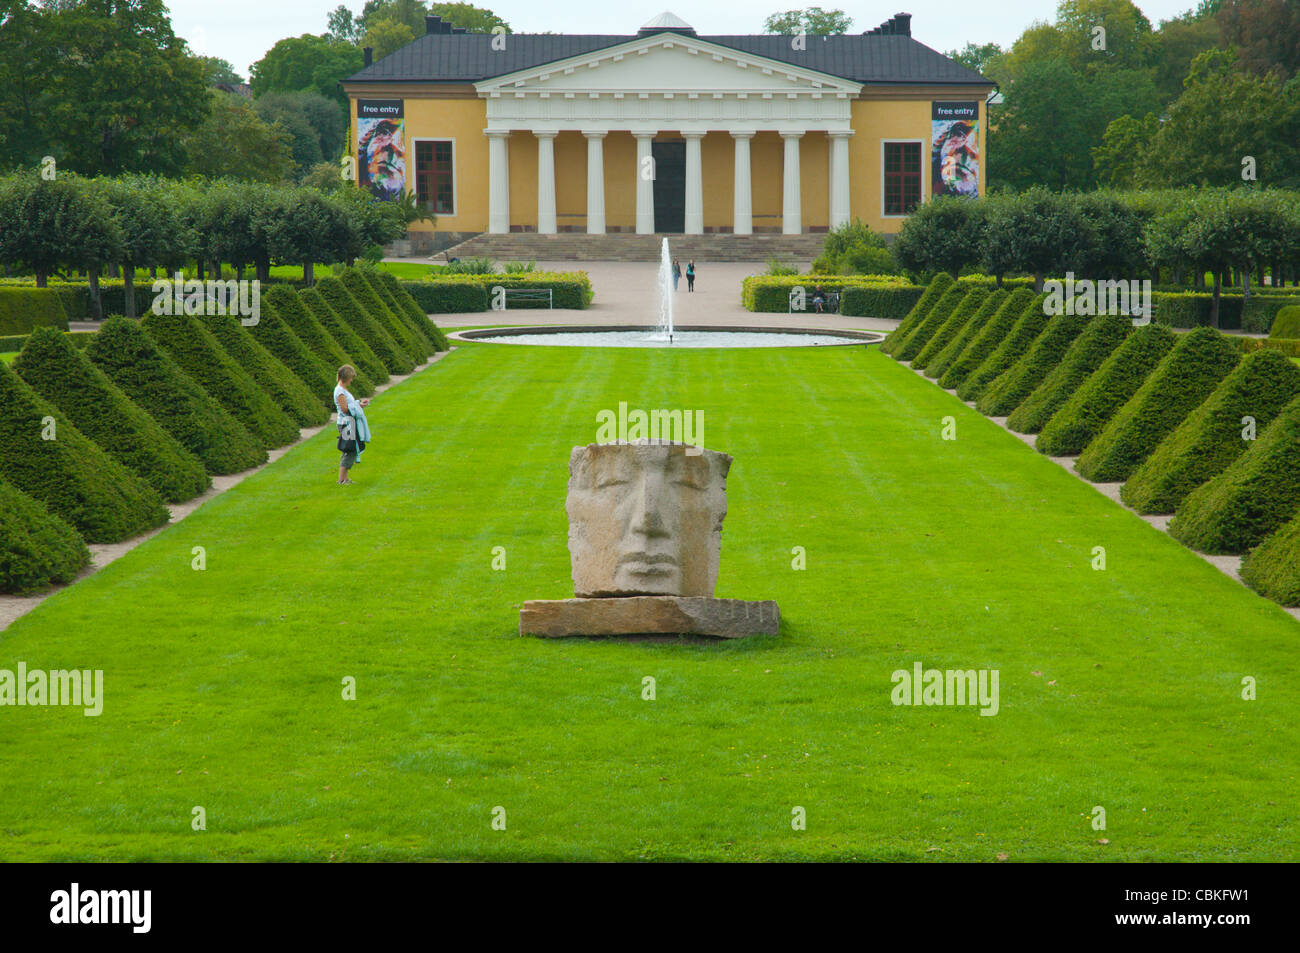 Botanical Gardens in Uppsala city Svealand province Sweden Europe Stock Photo